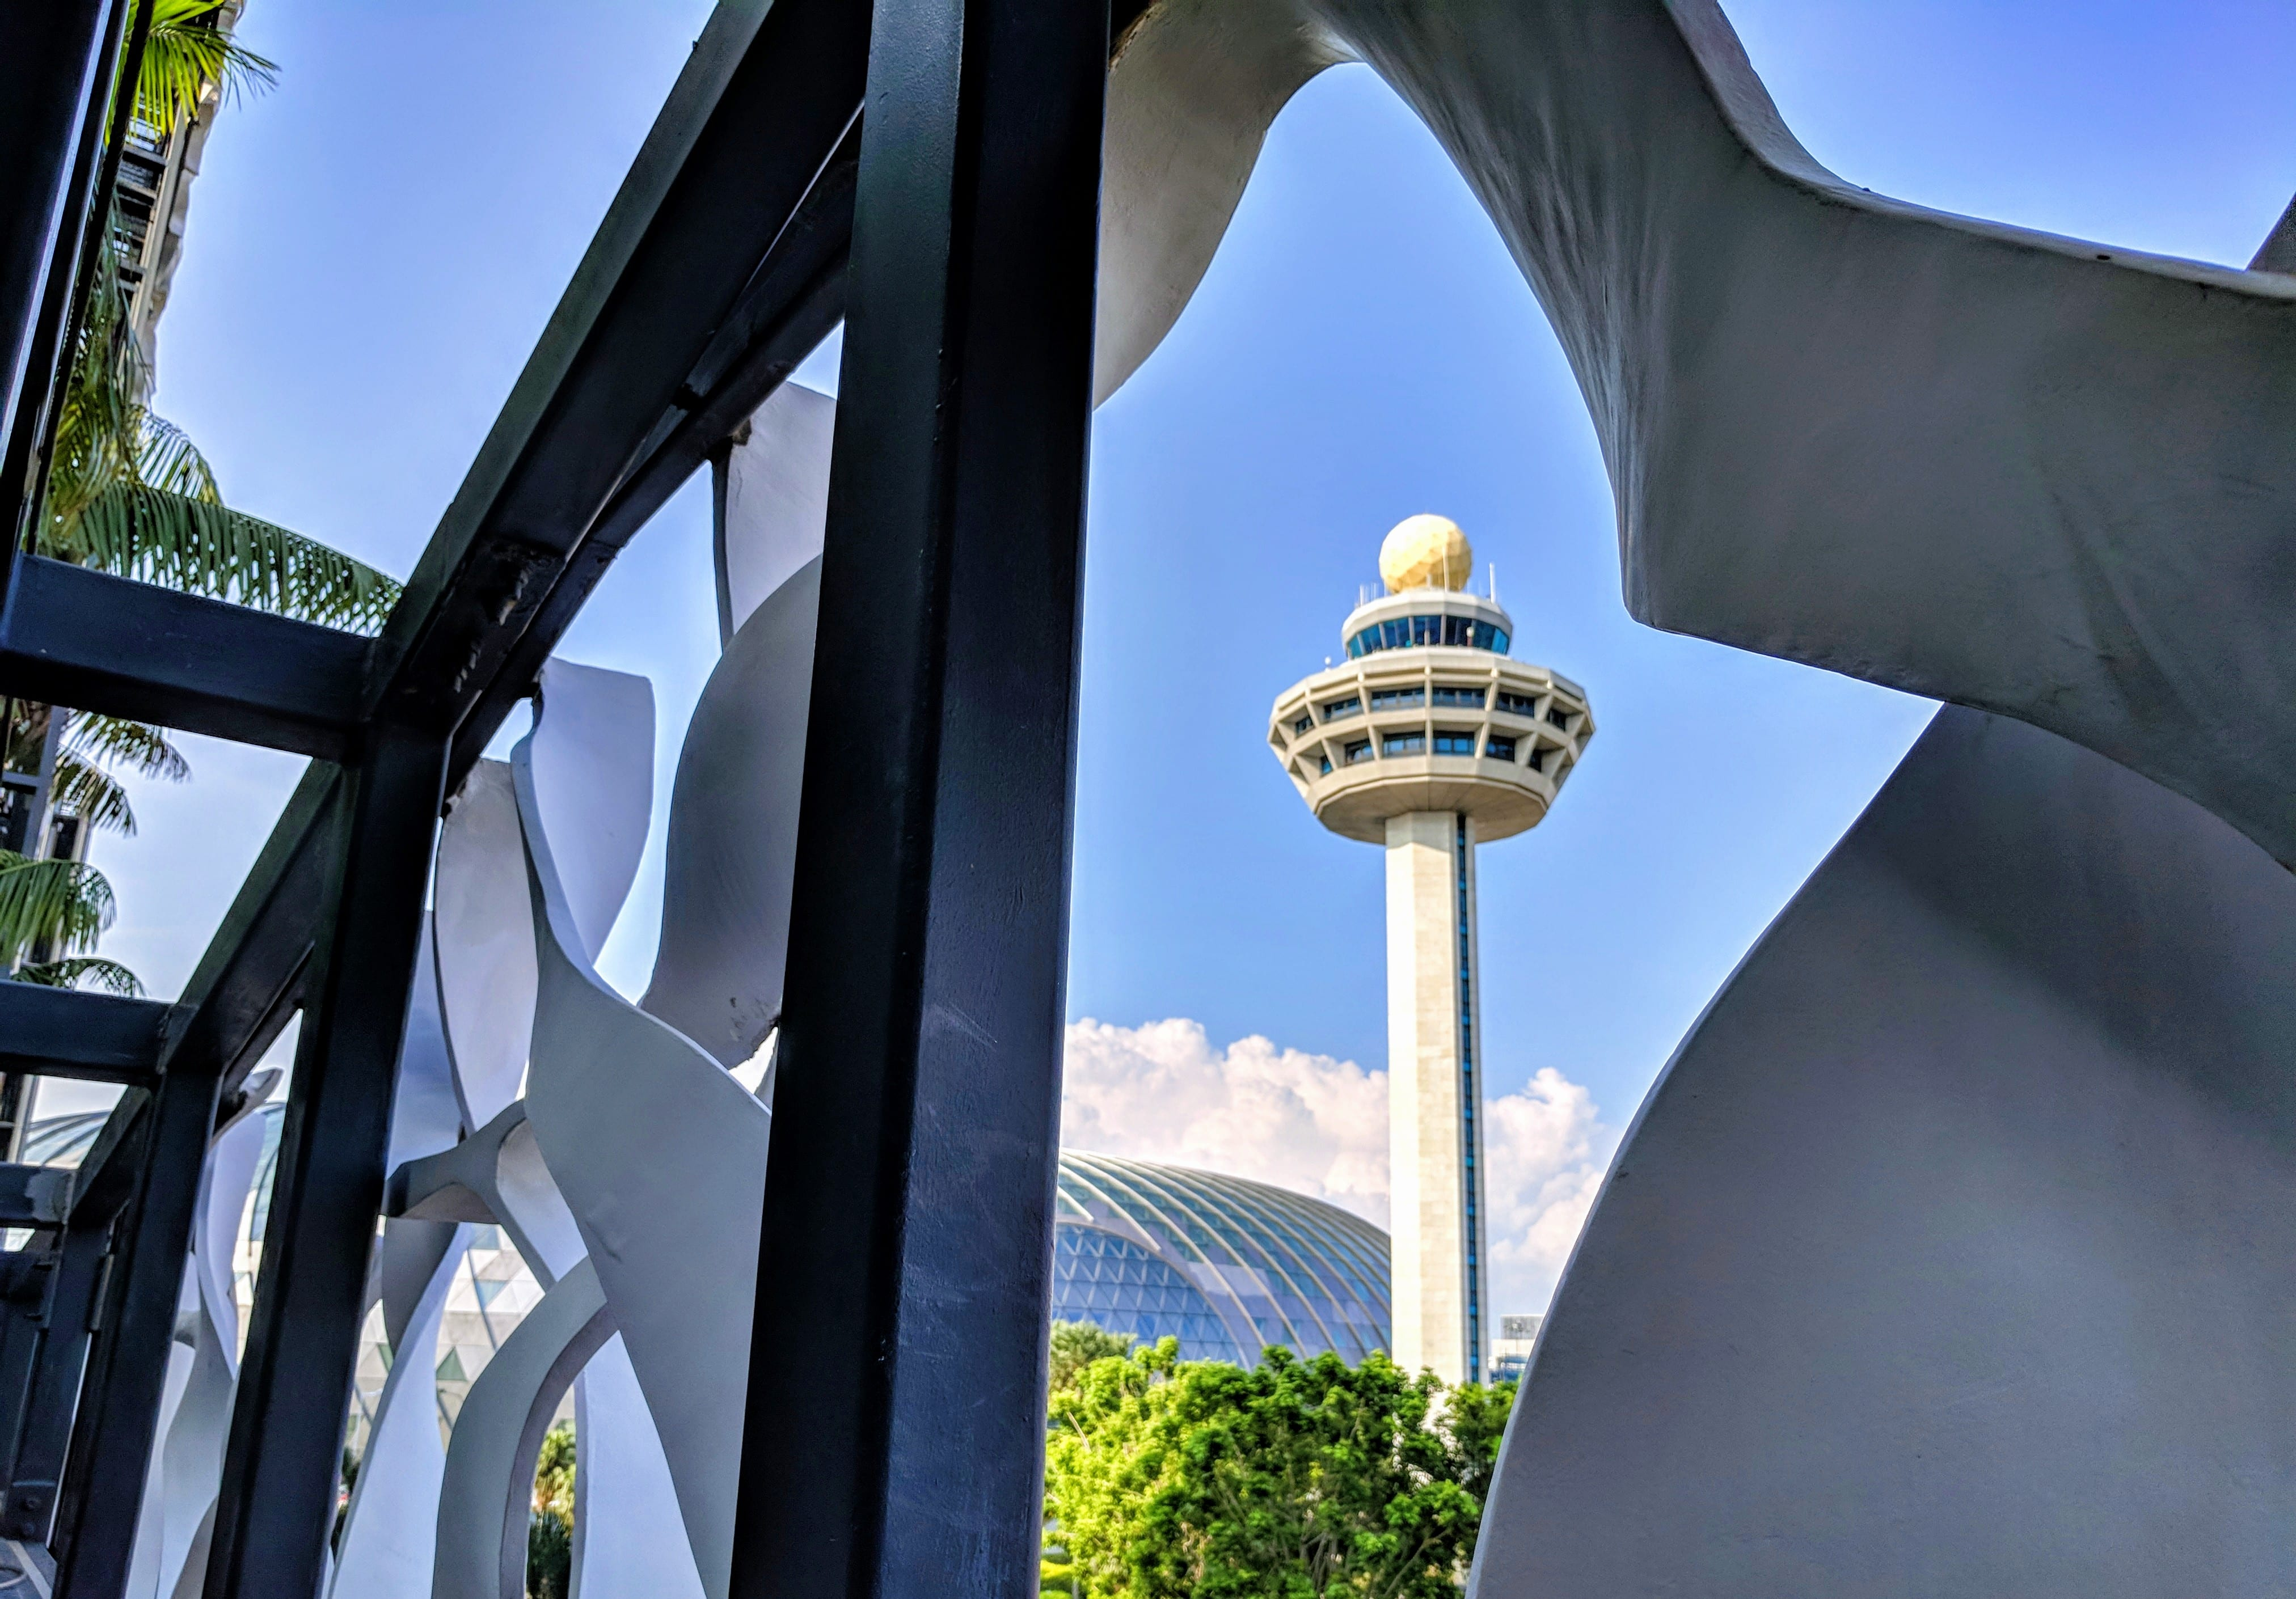 Review A Delightful Stay At The Crowne Plaza Changi Airport